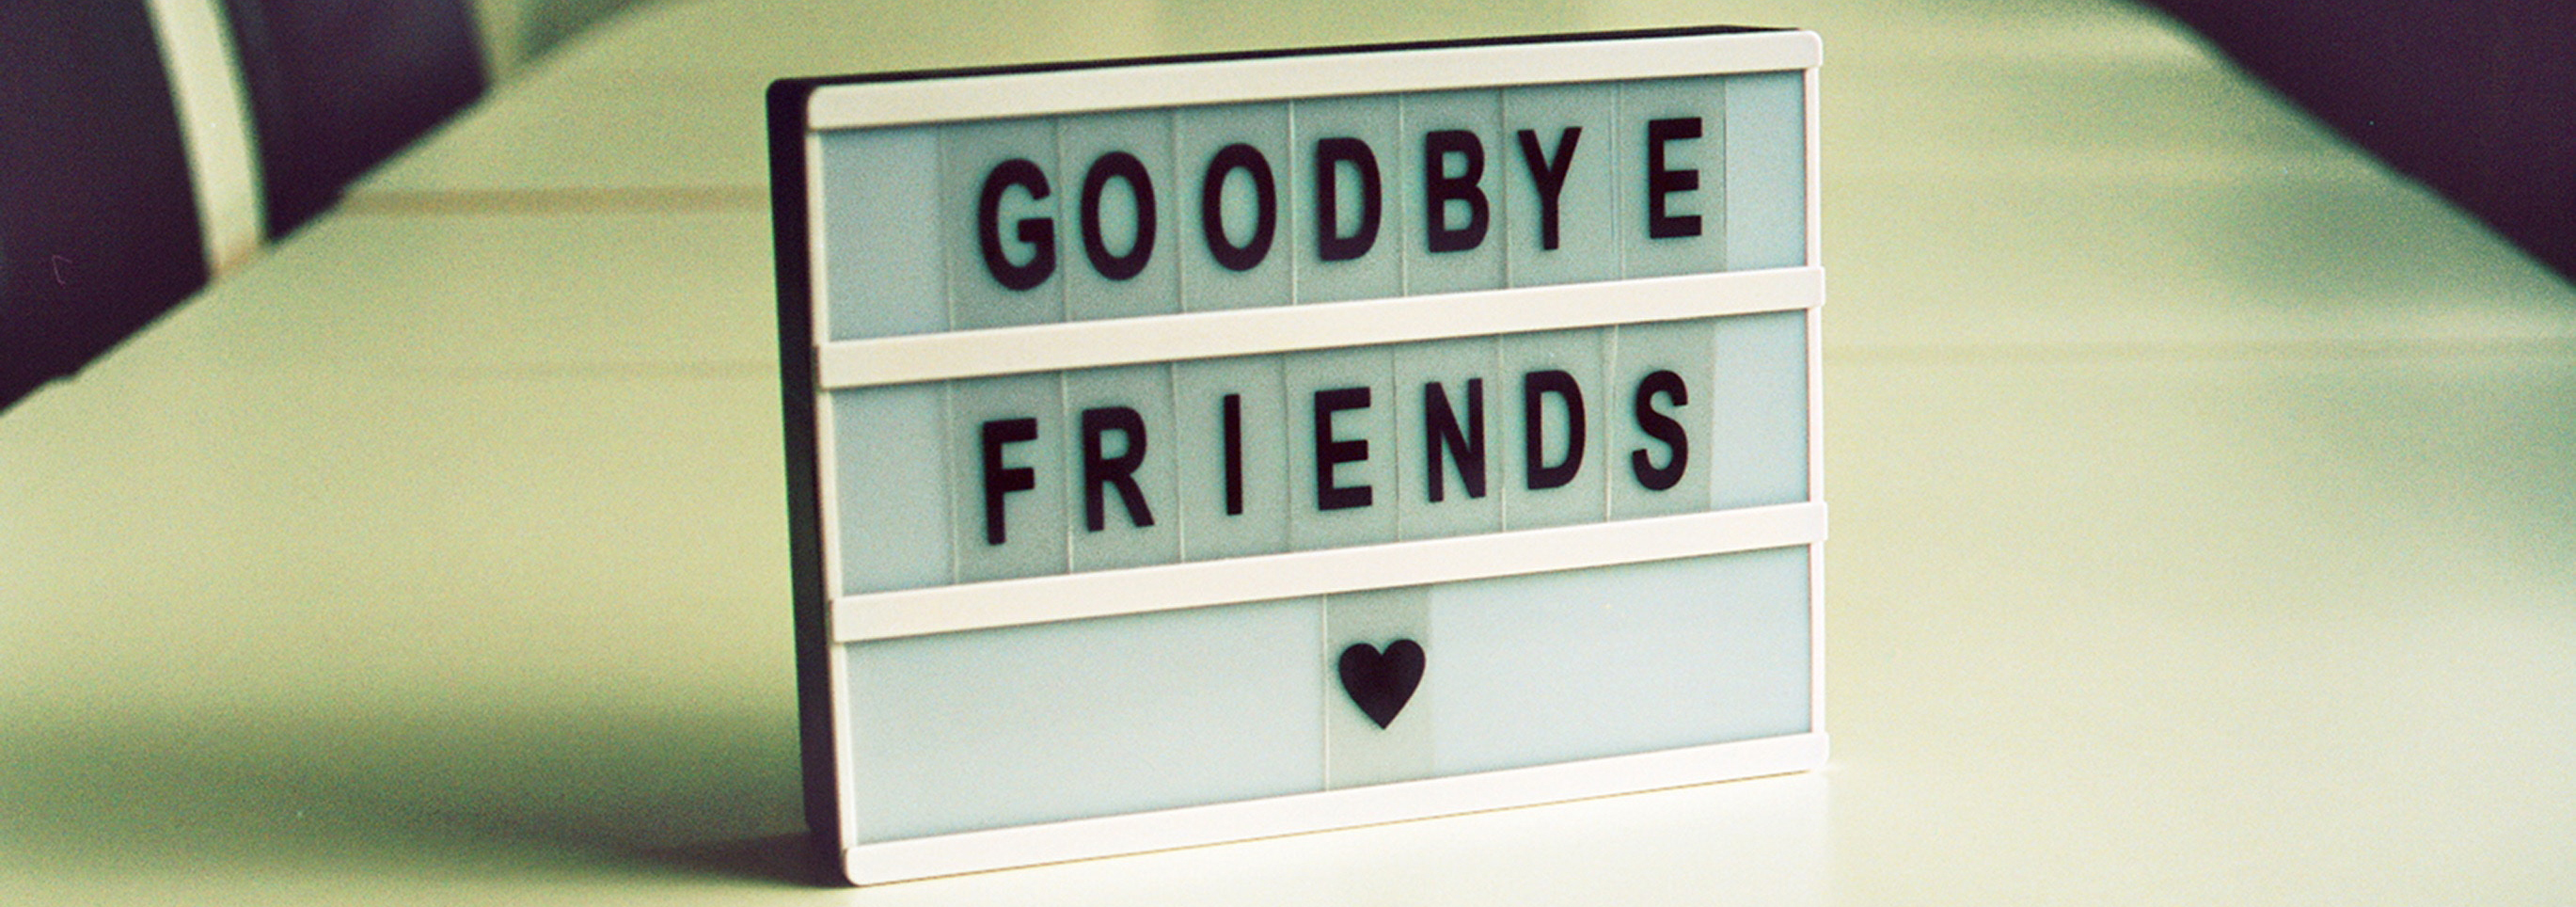 GoodbyeFriends.jpg